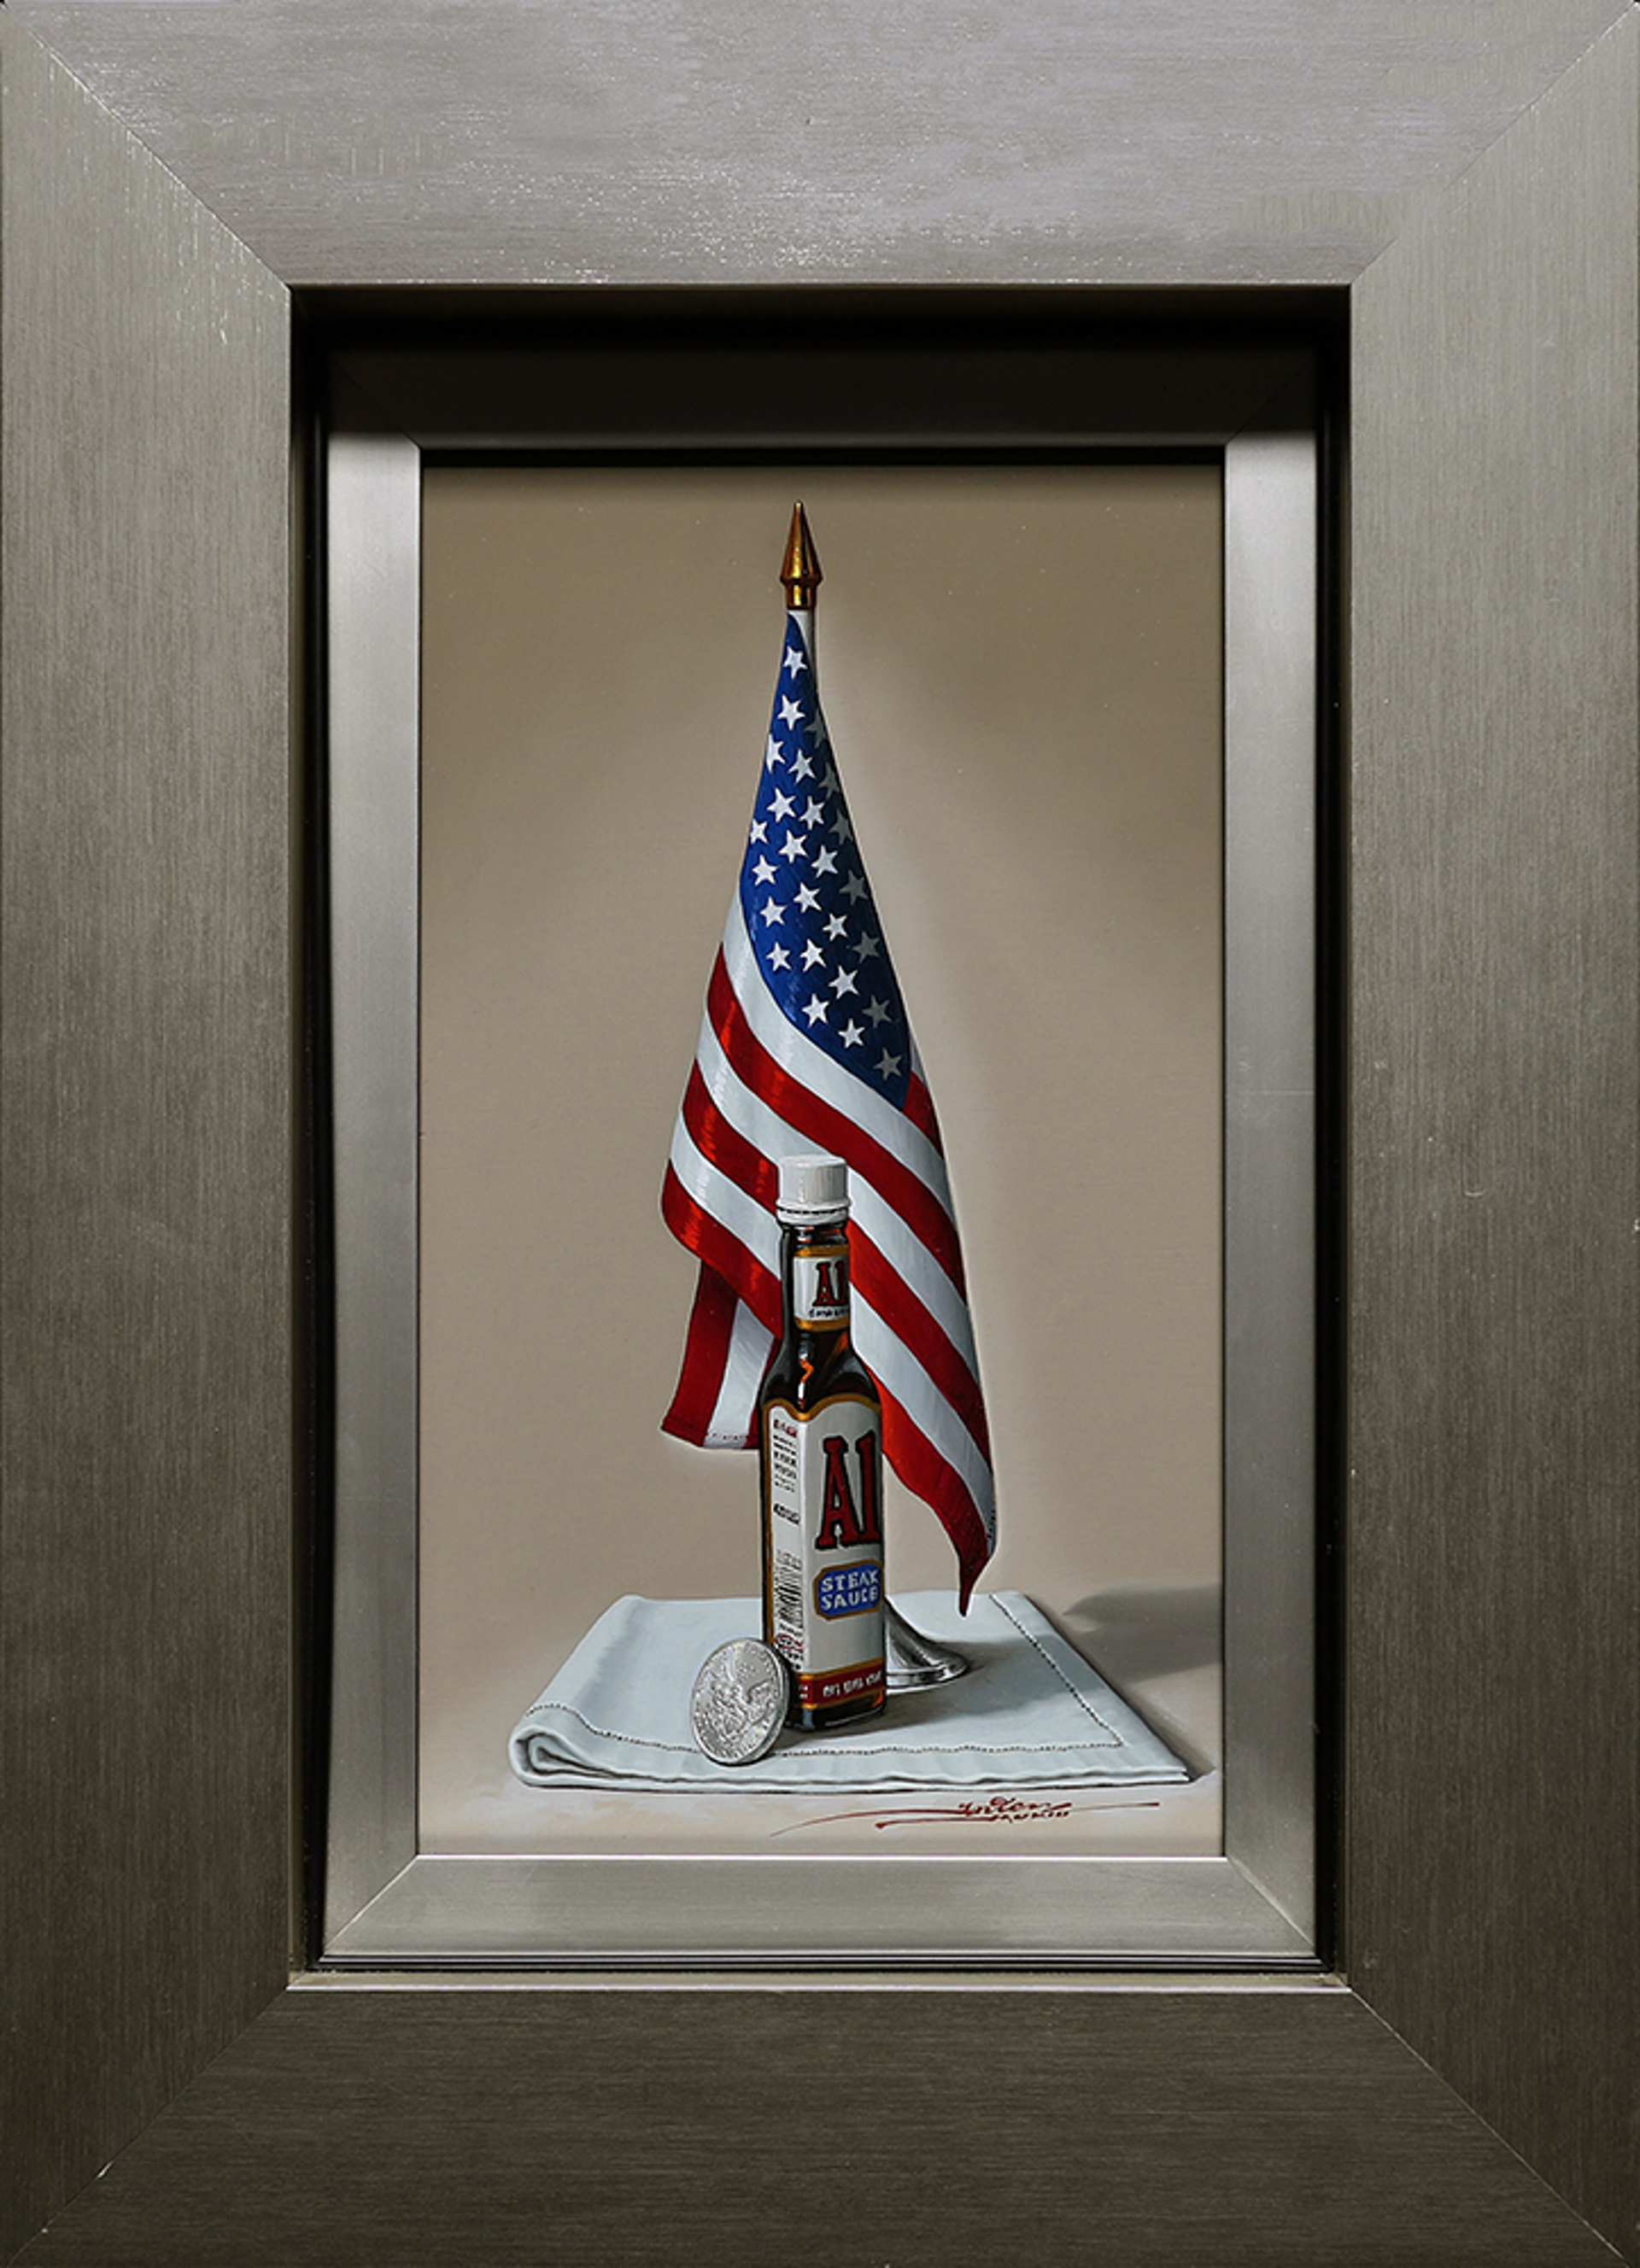 Born in the USA by Javier Mulio